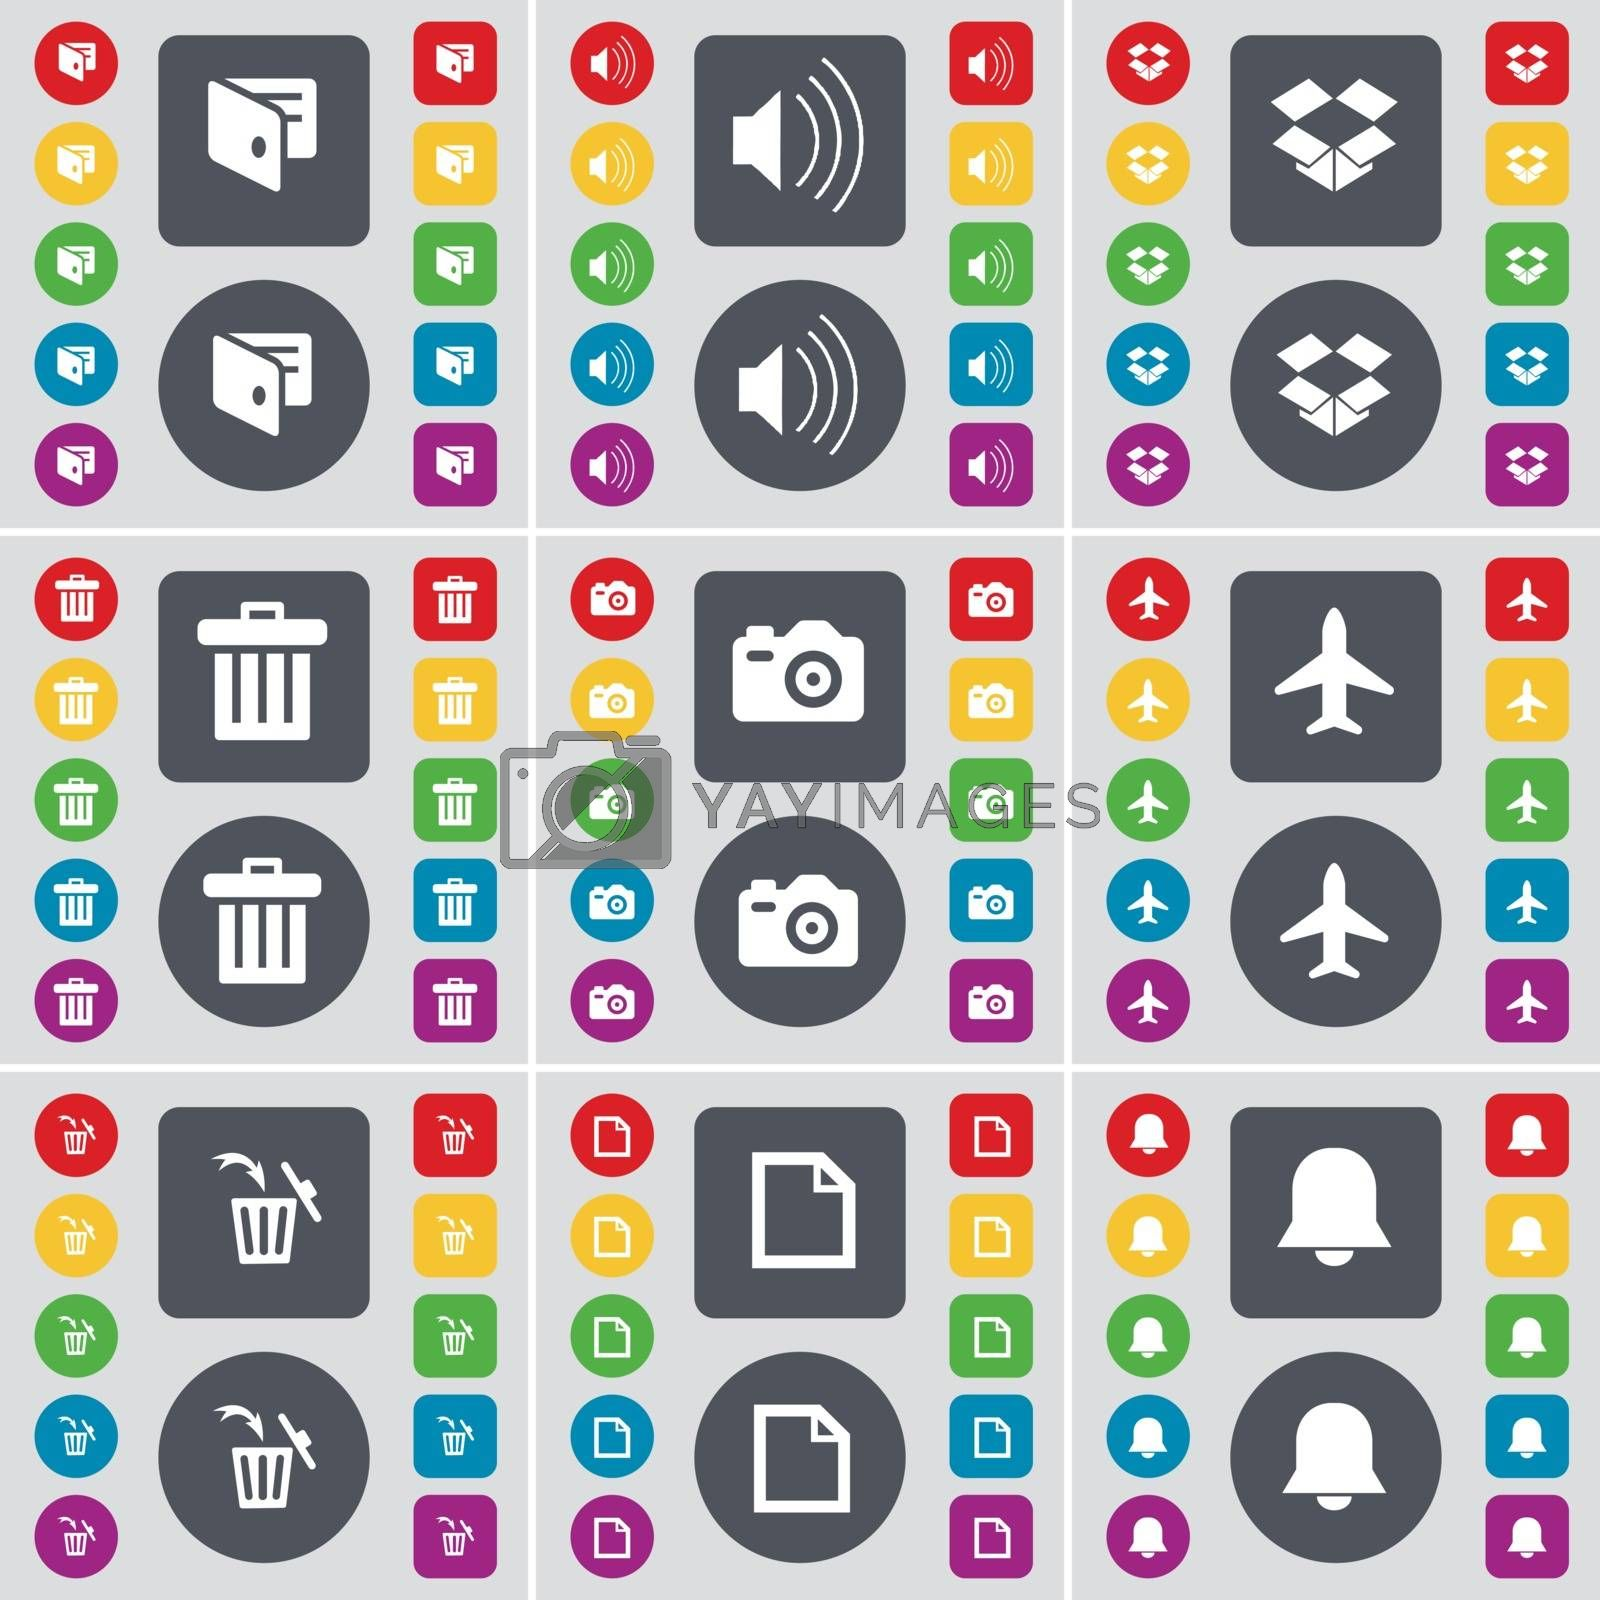 Royalty free image of Wallet, Sound, Dropbox, Trash can, Camera, Airplane, Trash can, File, Notification icon symbol. A large set of flat, colored buttons for your design. Vector by serhii_lohvyniuk